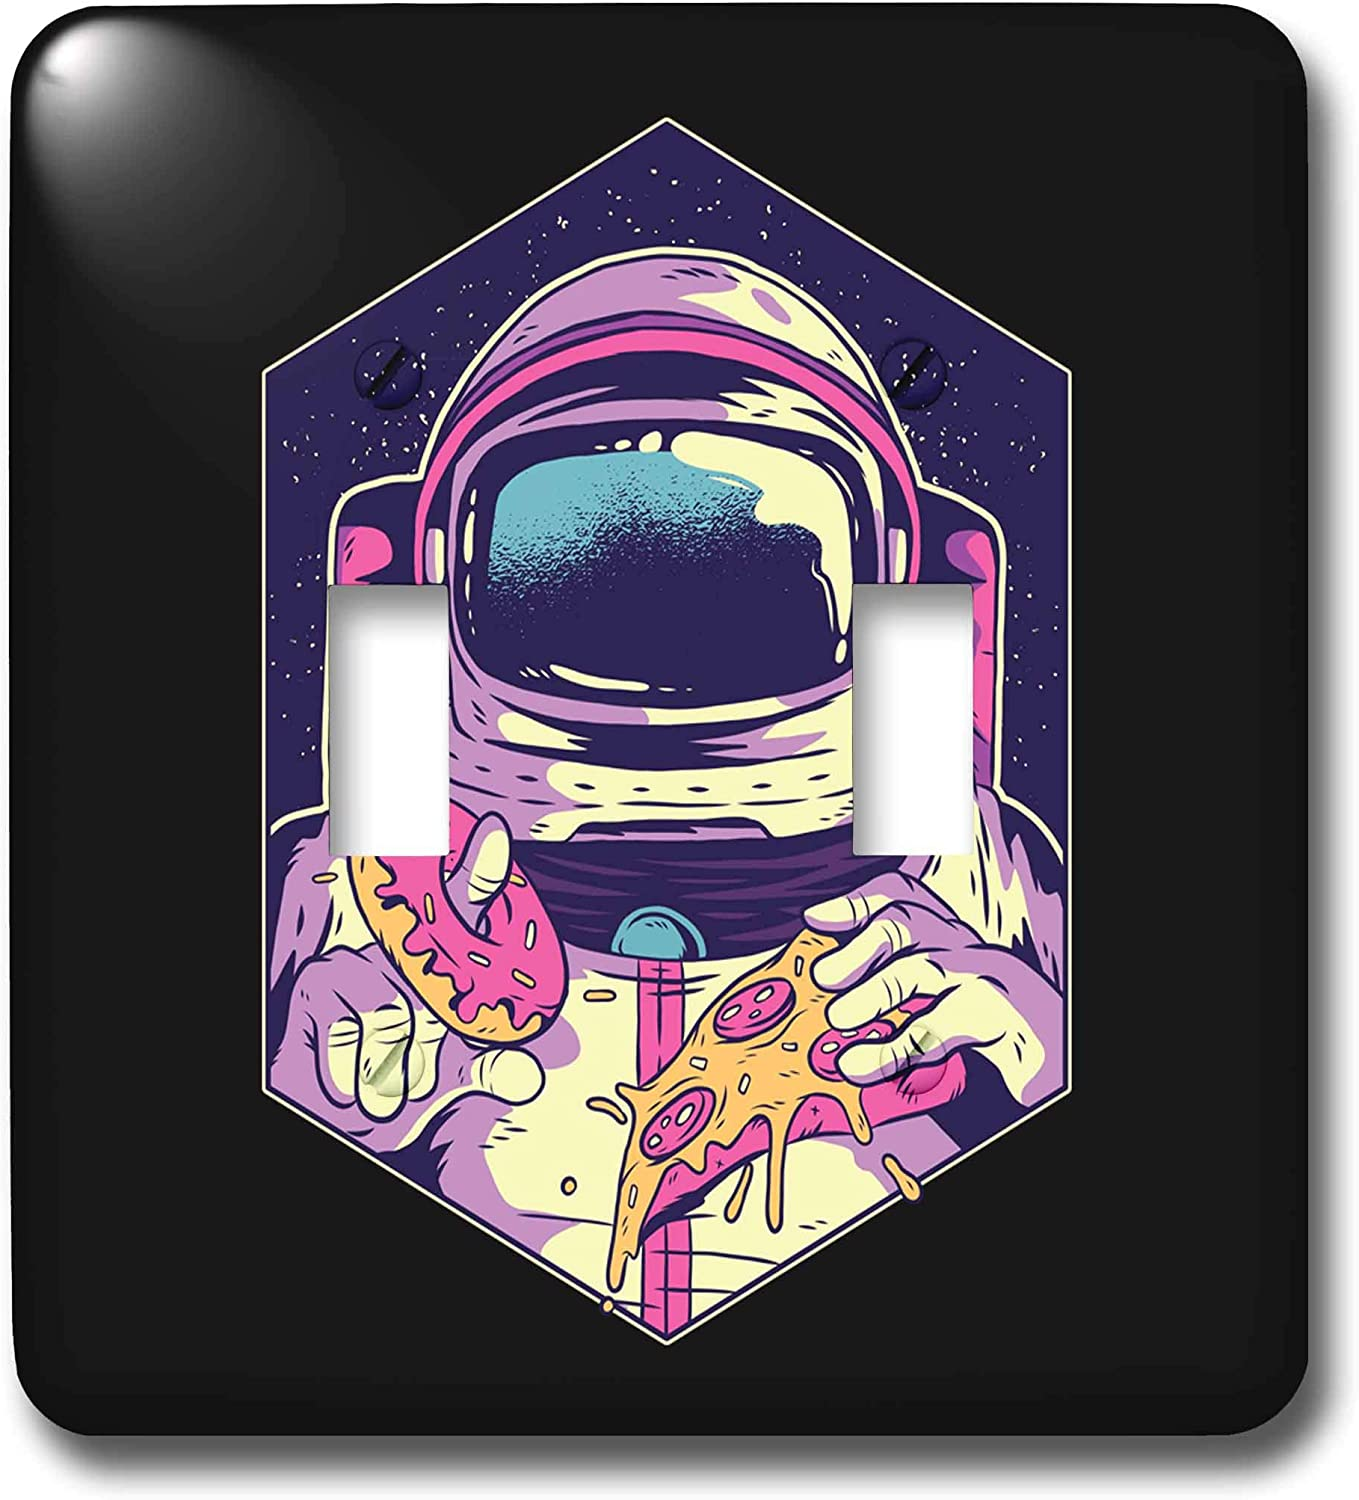 3dRose Sven Herkenrath Fantasy - Illustration Design with Astronaut and Pizza Food Sweet - double toggle switch (lsp_306912_2)